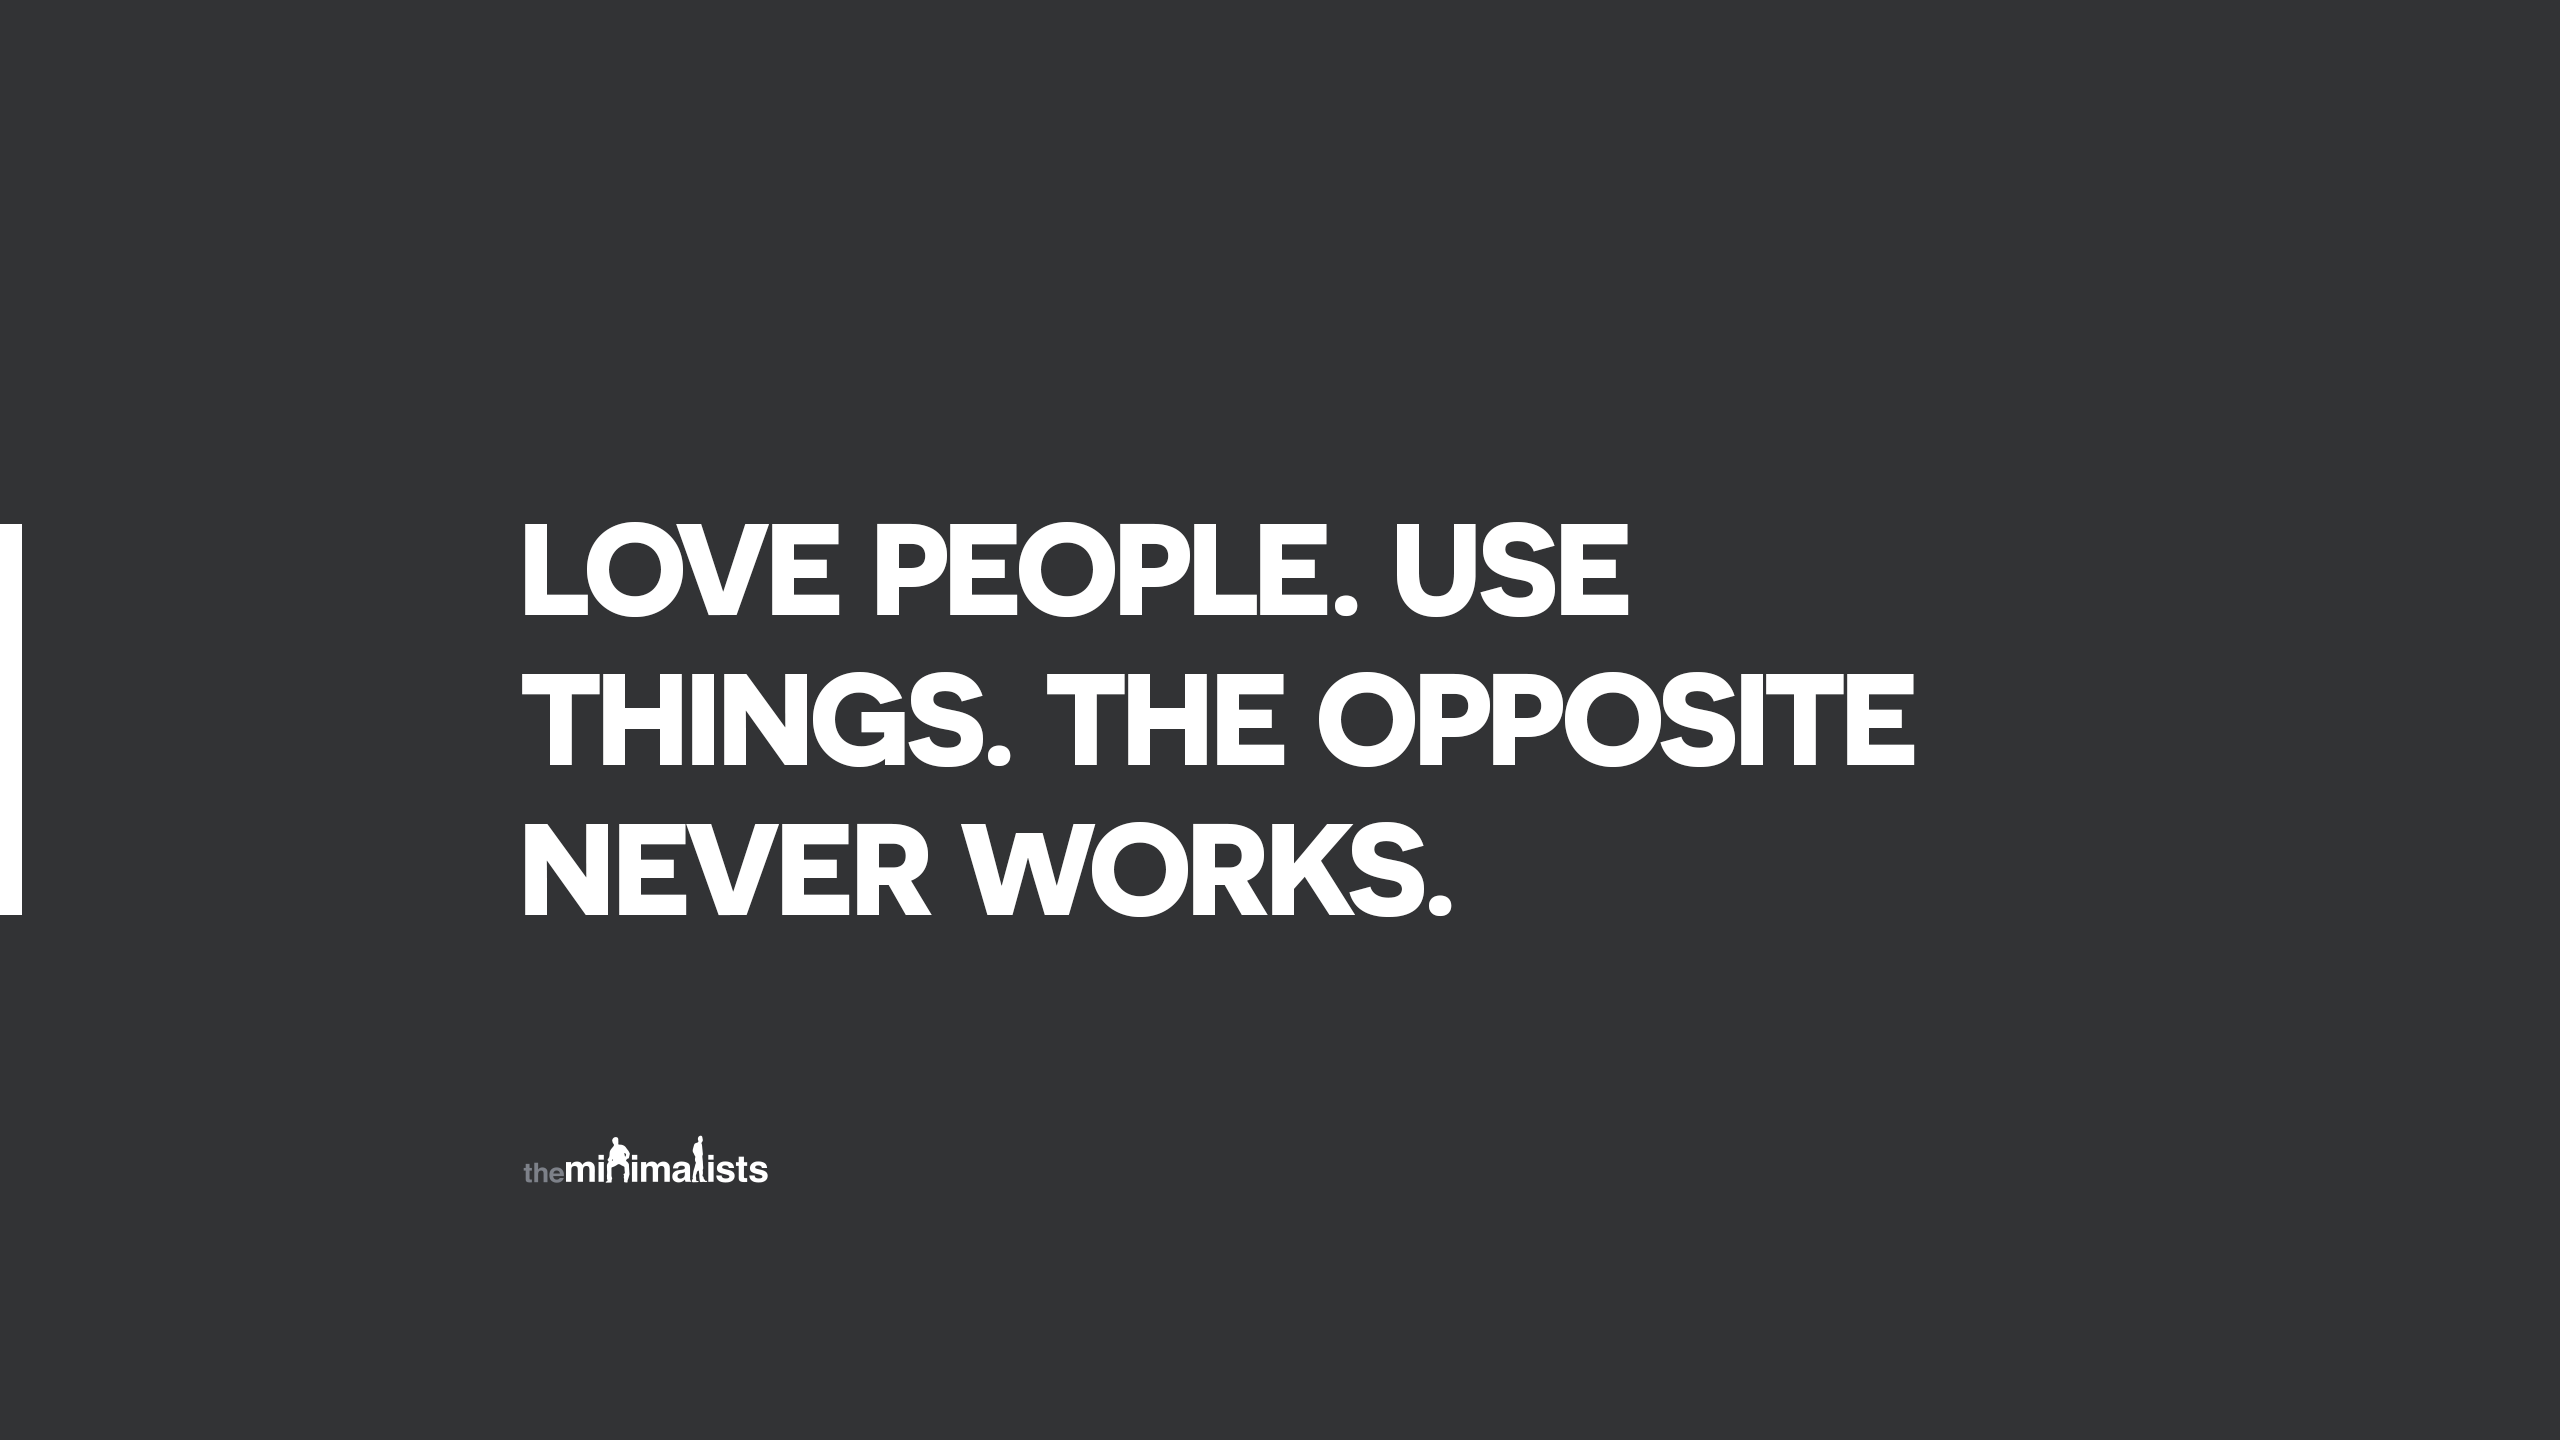 love people use things wallpaper the minimalists